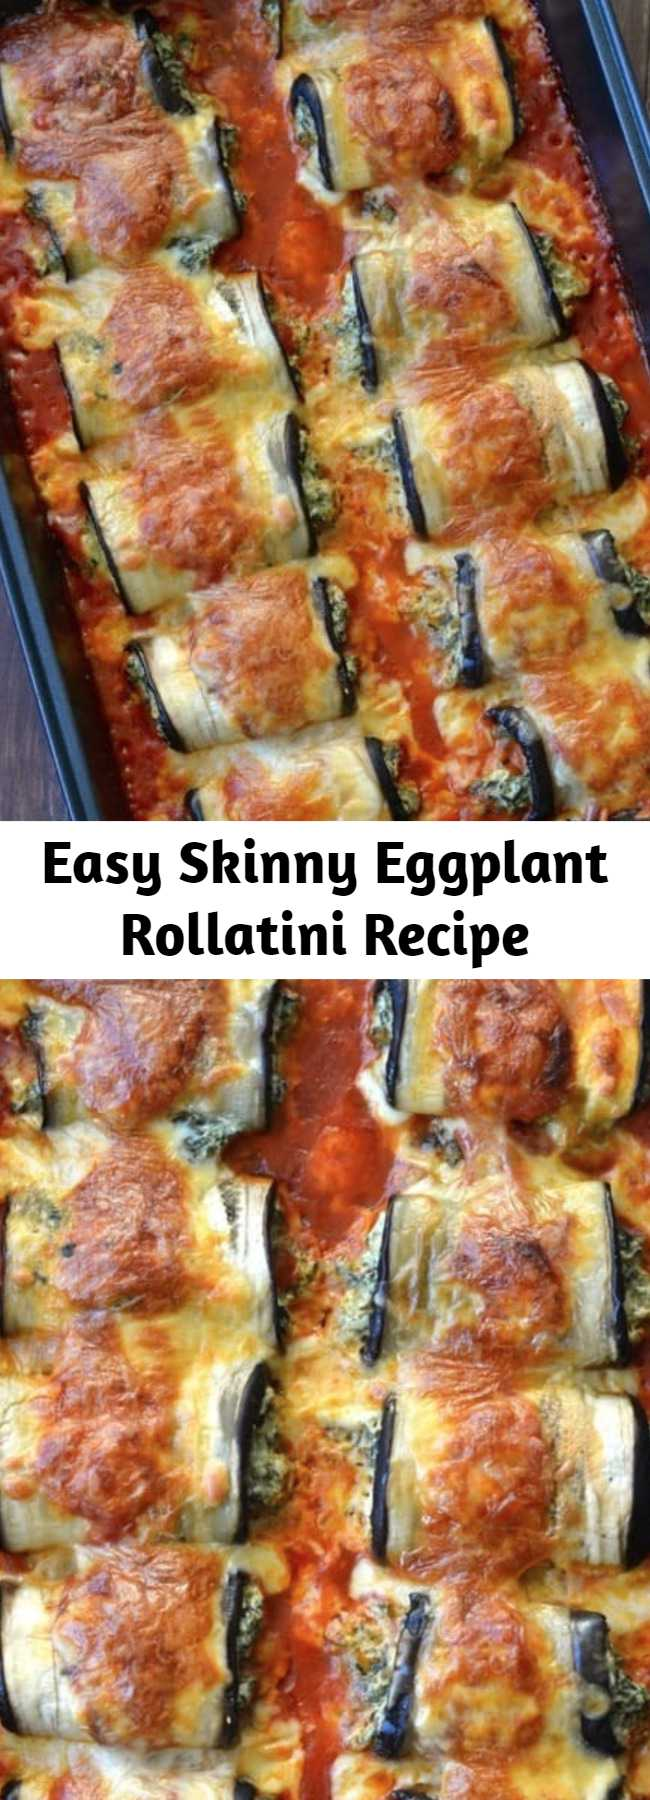 Easy Skinny Eggplant Rollatini Recipe - Sliced eggplants stuffed with Italian cheese and spinach, then rolled up and baked until tender with loads of melted cheese on top. These guilt-free Skinny Eggplant Rollatini are scrumptious, gluten free and low carb!